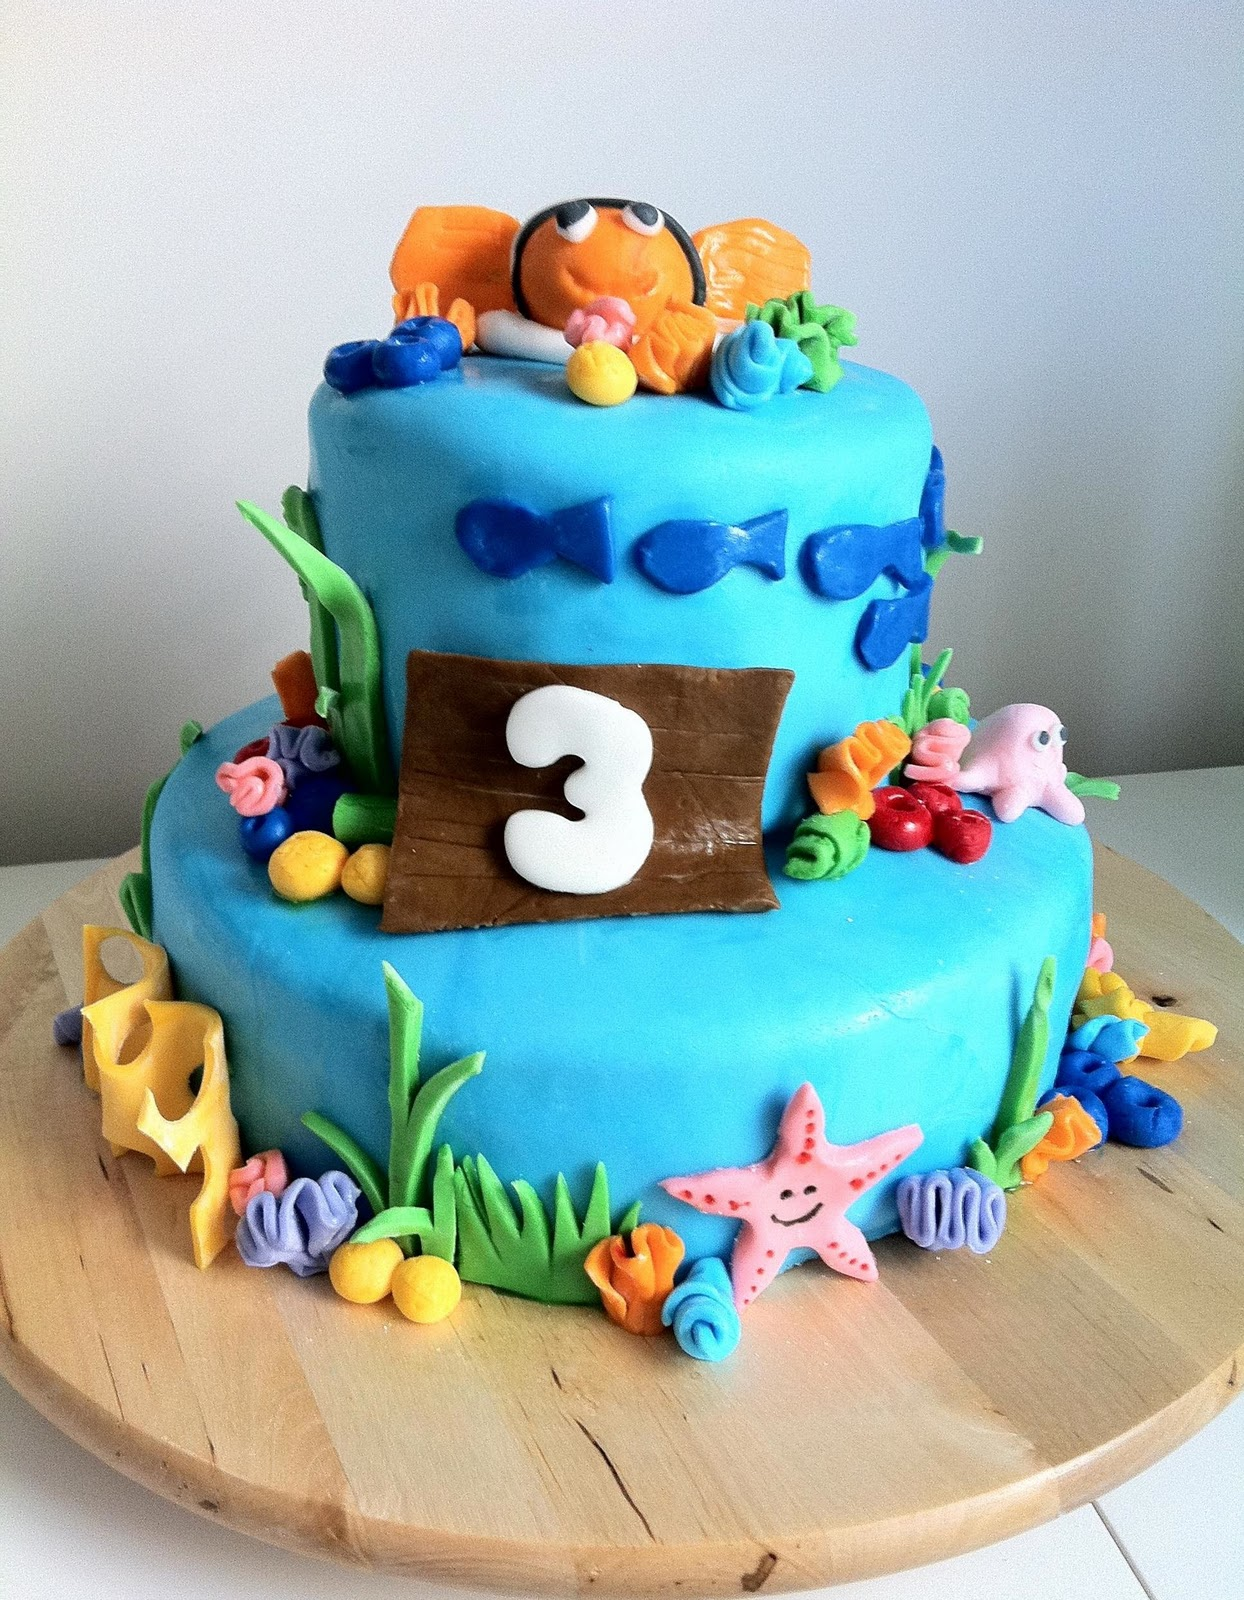 Sweetness By D Finding Nemo Logan S 3rd Birthday Cake Designs For 3 Years Old Boy